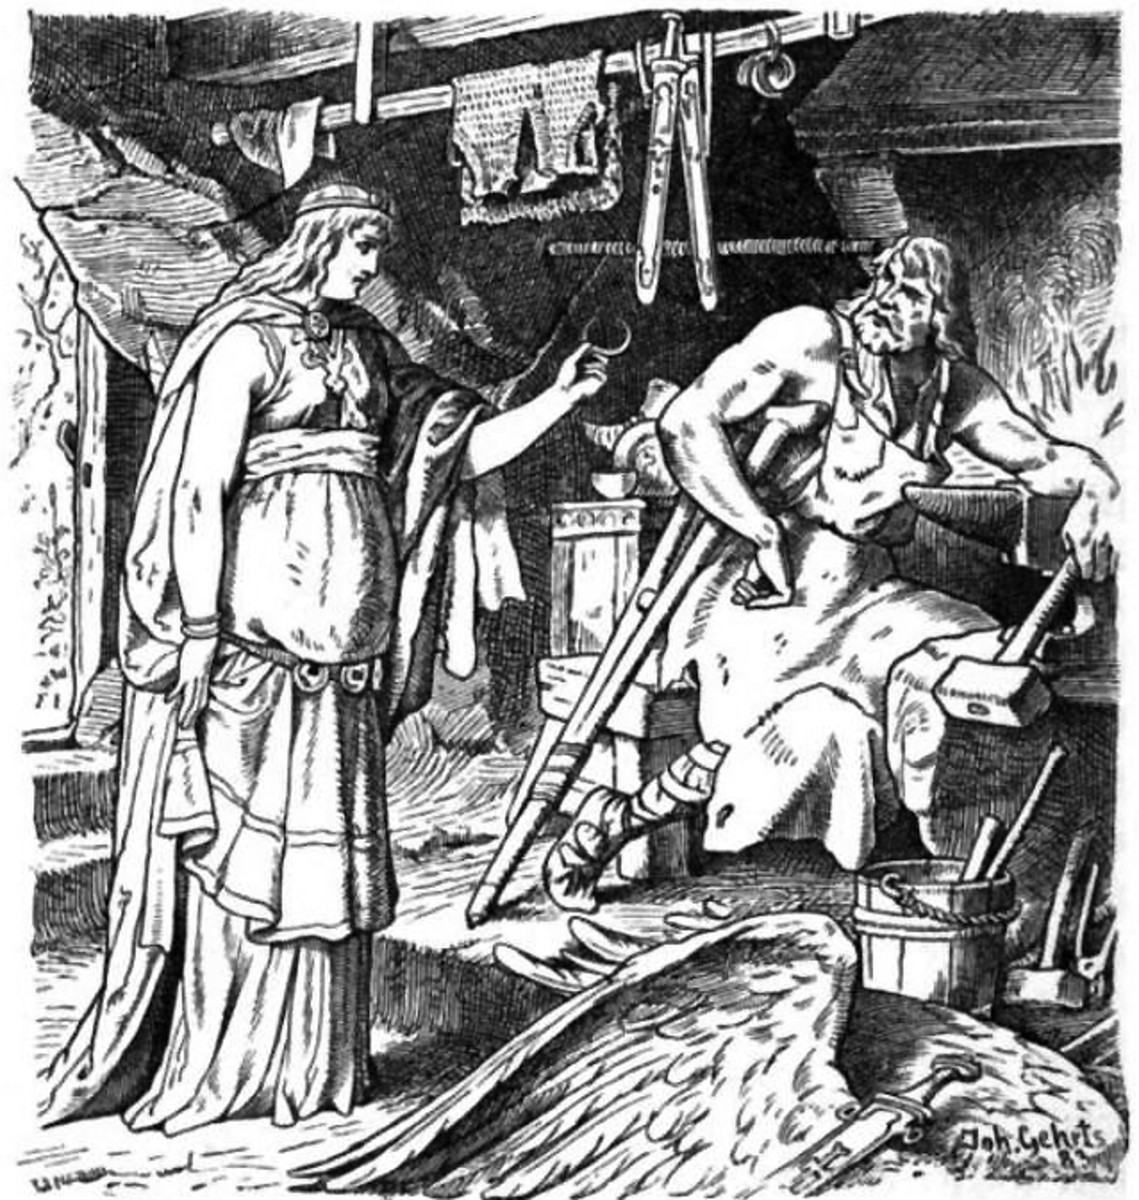 Badhild in Wayland's Smith (Johannes Gehrts 1901) -- notice Wayland's crutches from being hobbled.